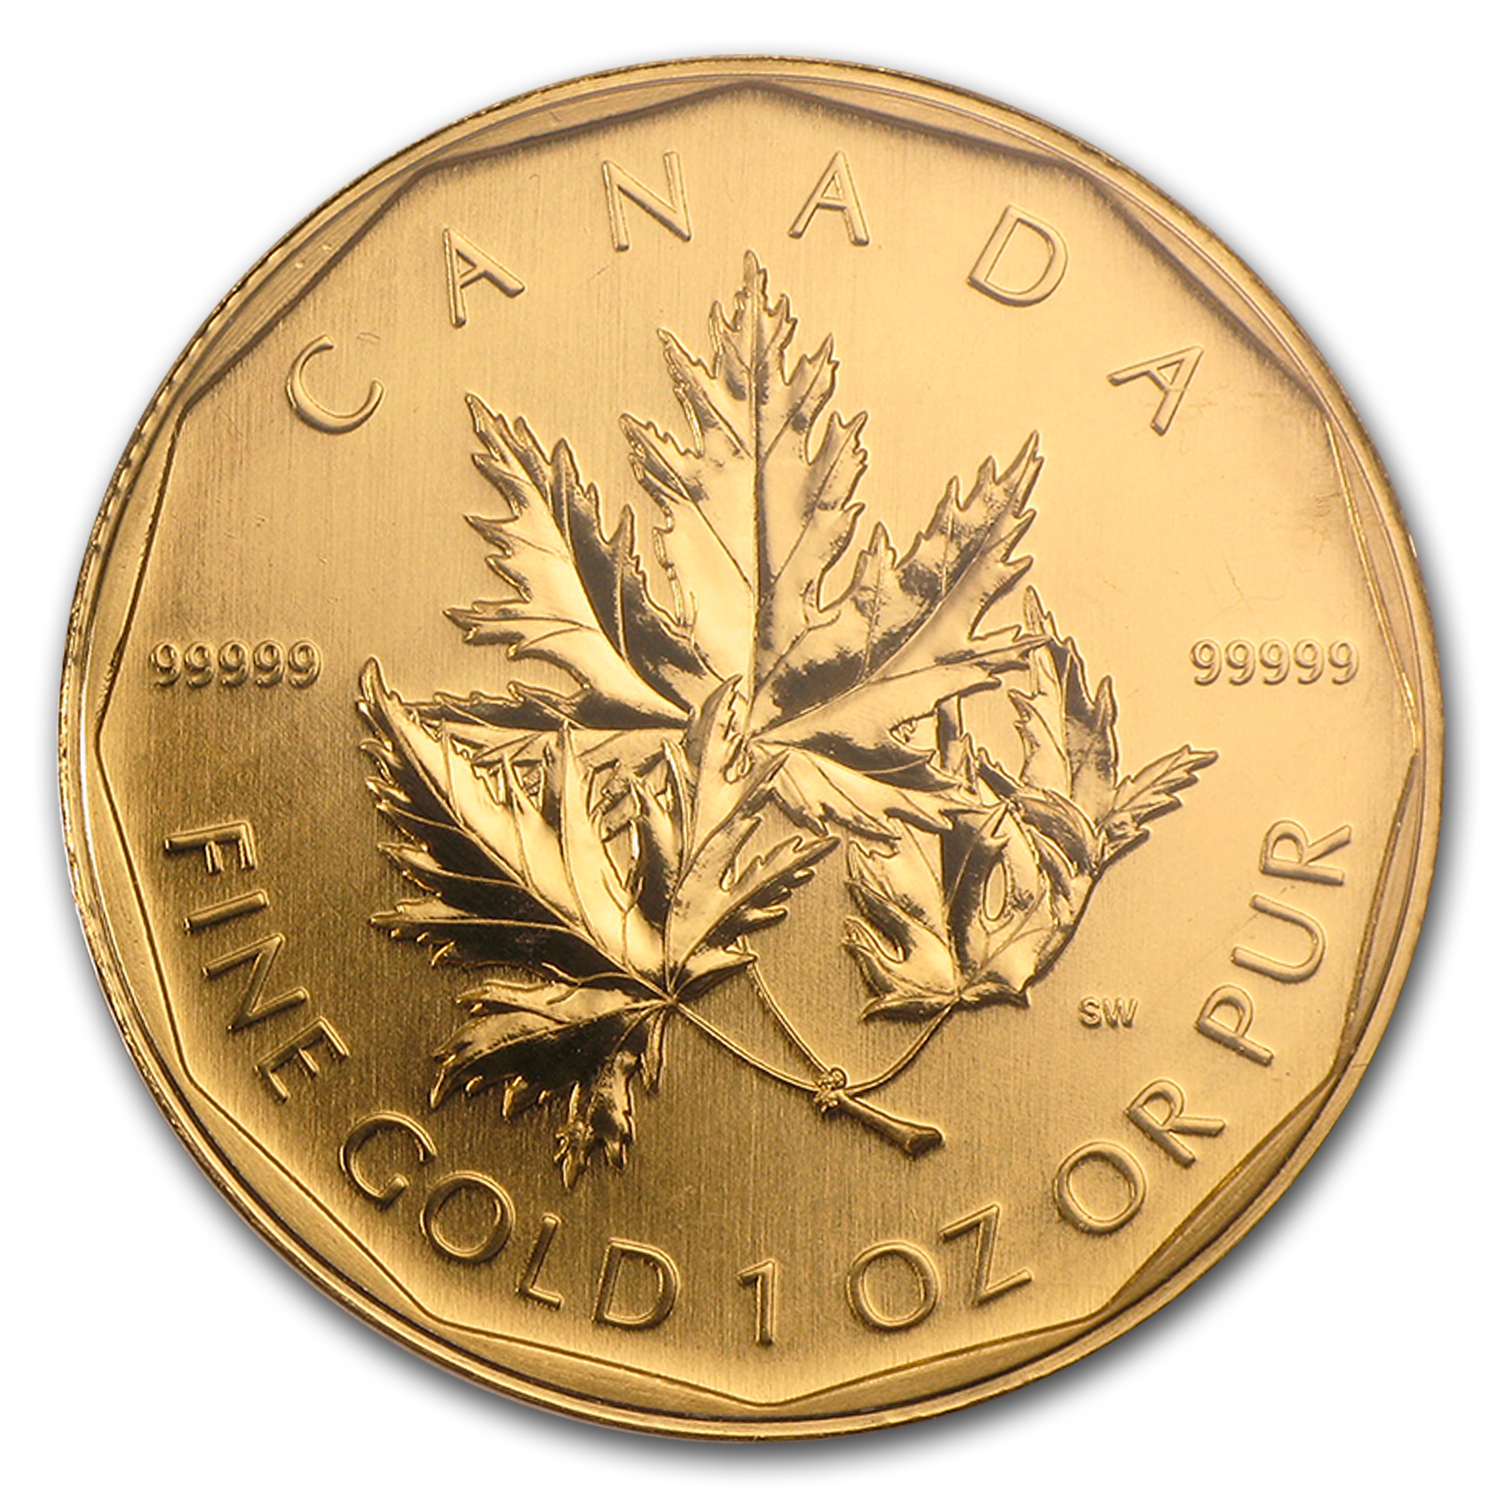 2007 1 oz Gold Canadian Maple Leaf .99999 BU (w/Assay Card)